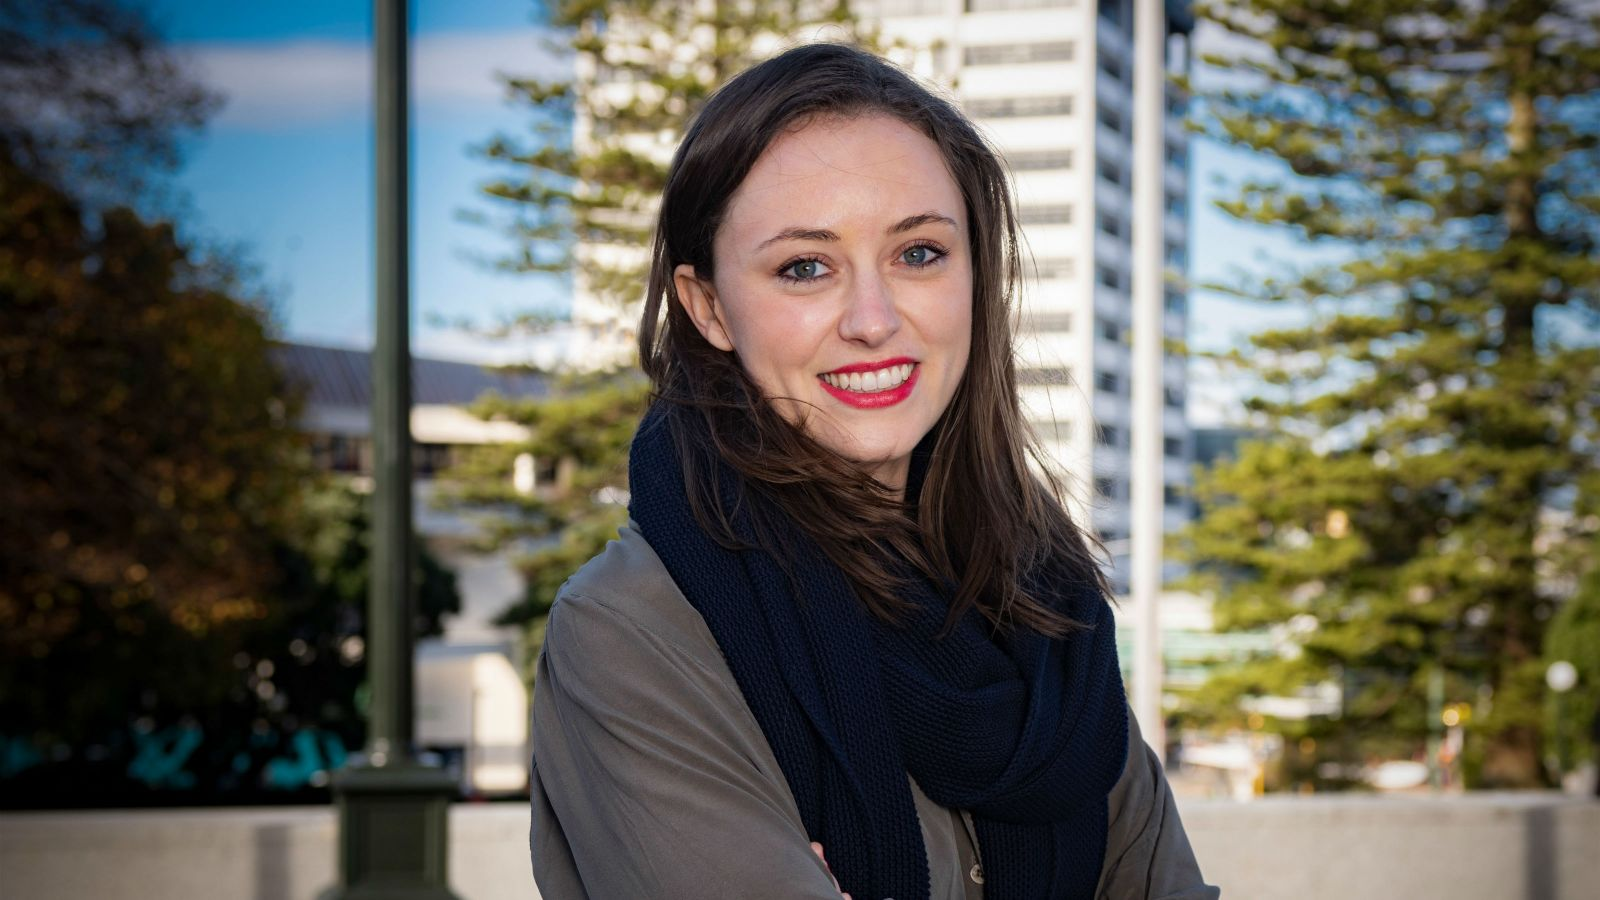 Kell Howson, wearing a dark grey shirt and black scarf, stands with her arms crossed in Wellington city. Behind her is the blurred outline of a high rise building and trees.